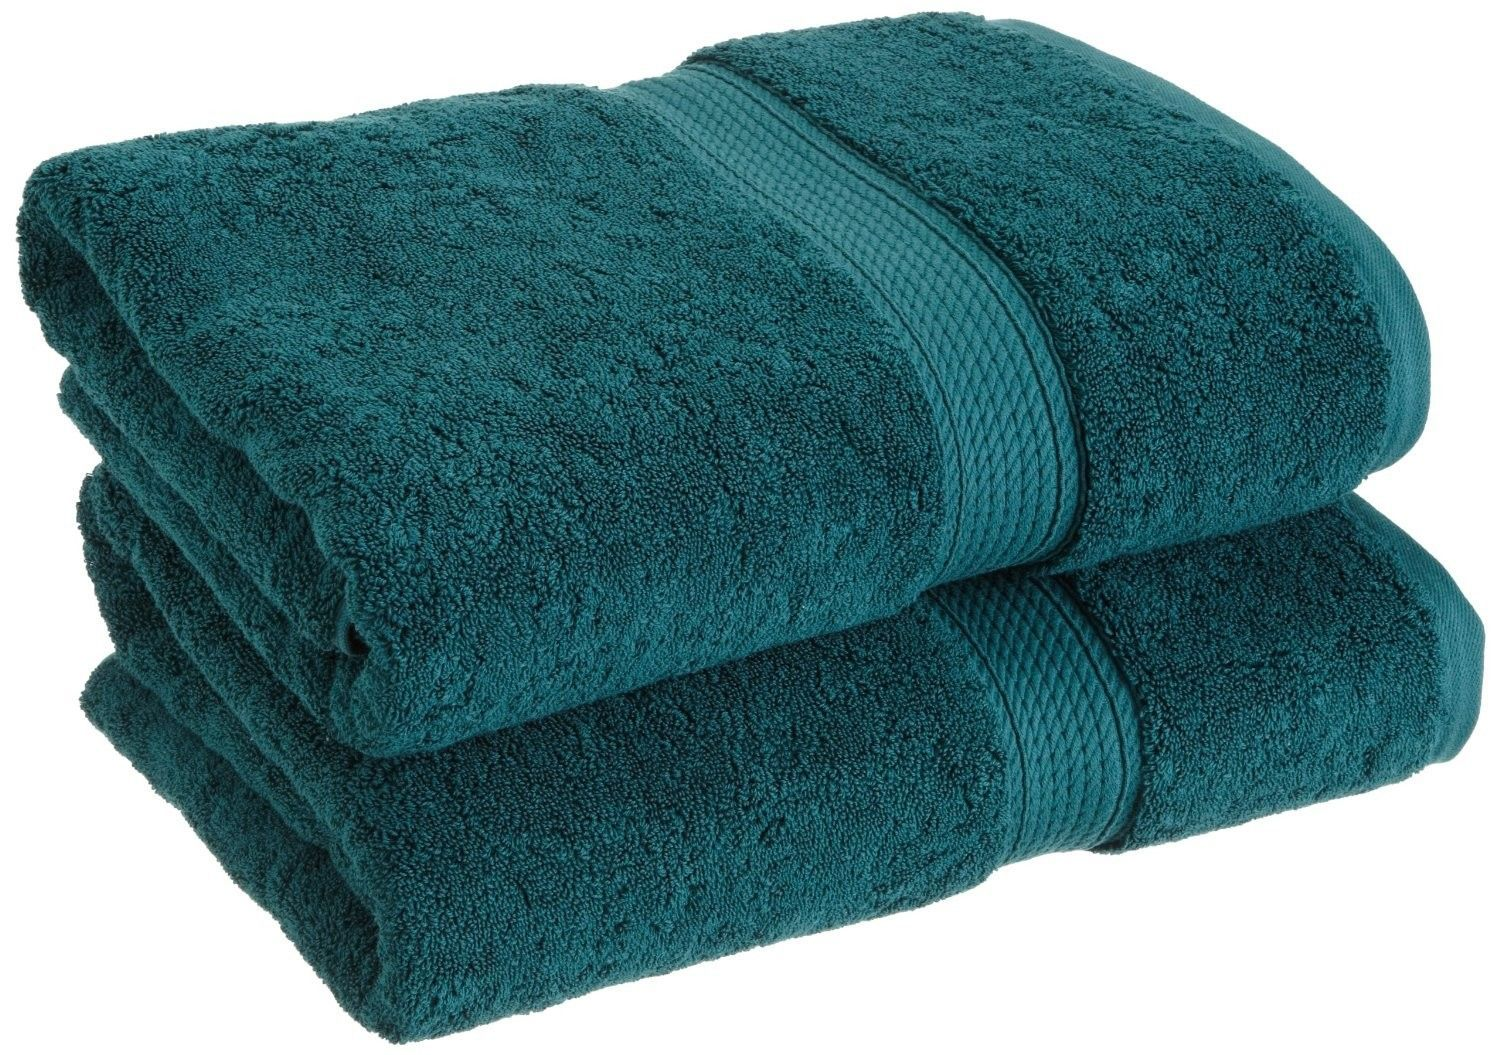 Superior 900 Gsm Egyptian Cotton Bath Towel With Images Teal